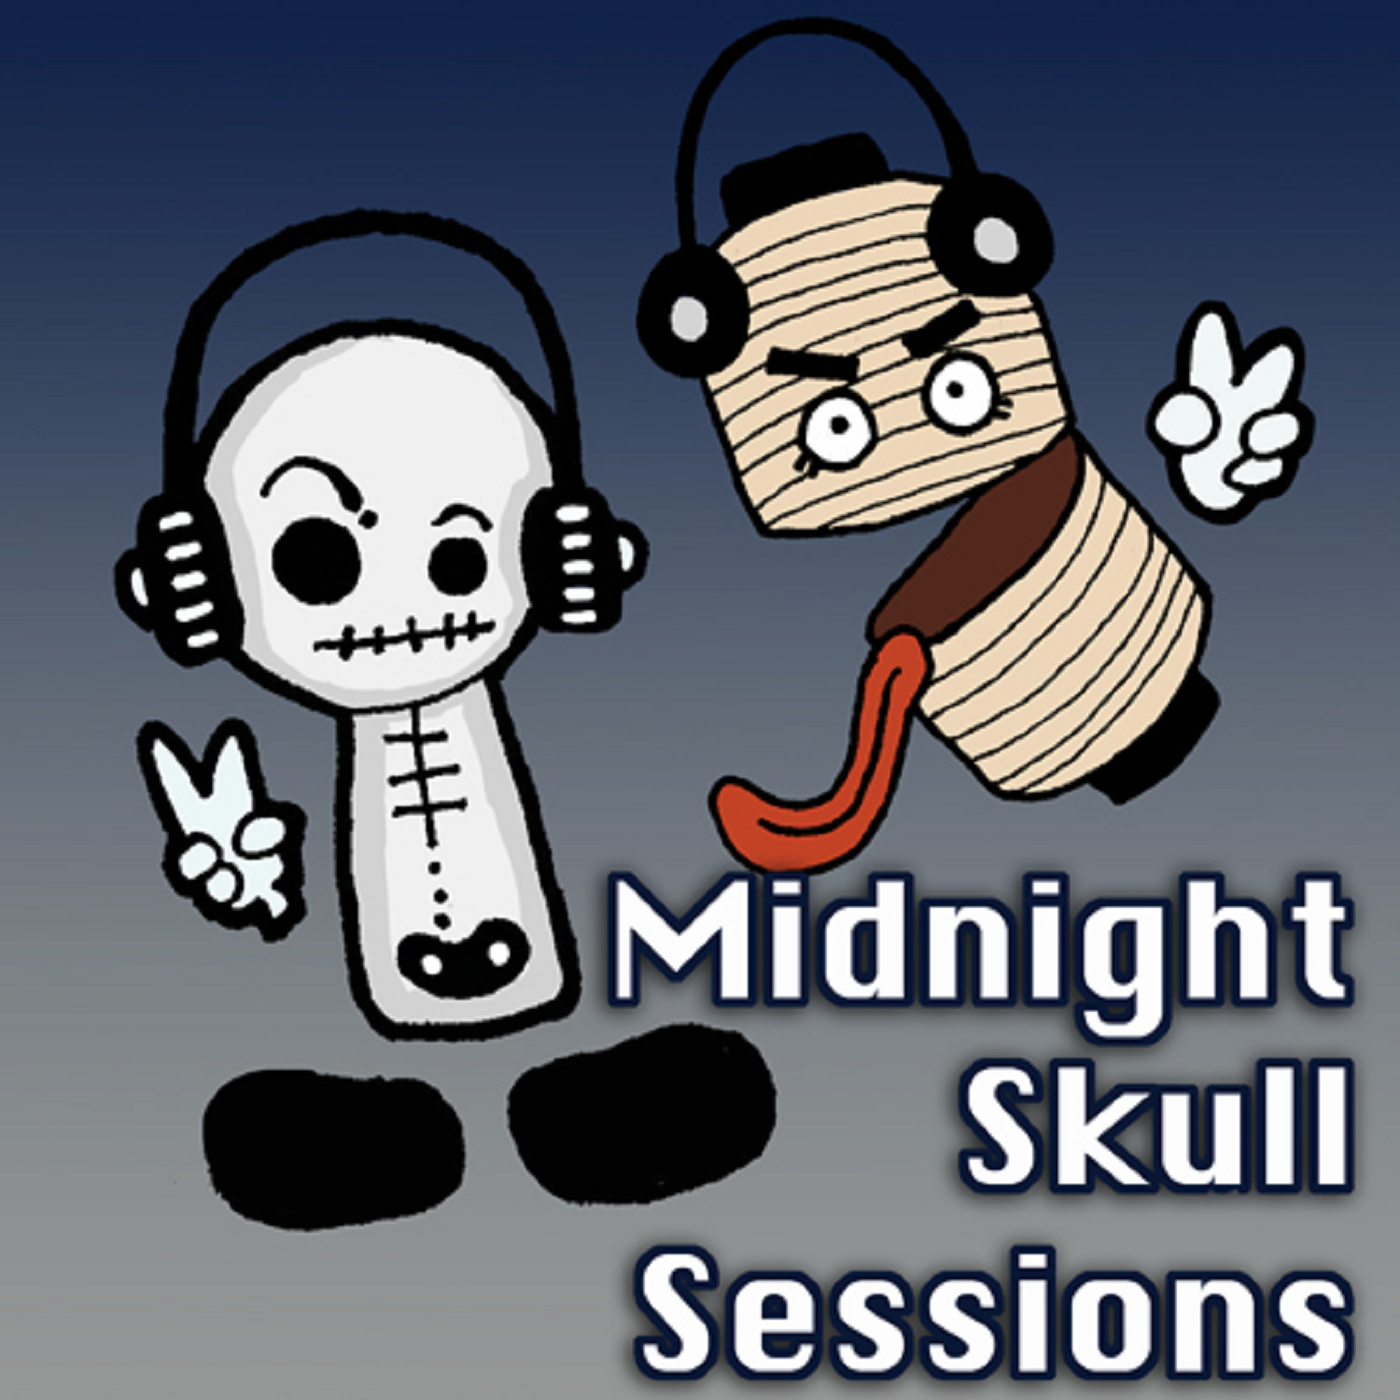 Midnight Skull Sessions - Episode 115 show art